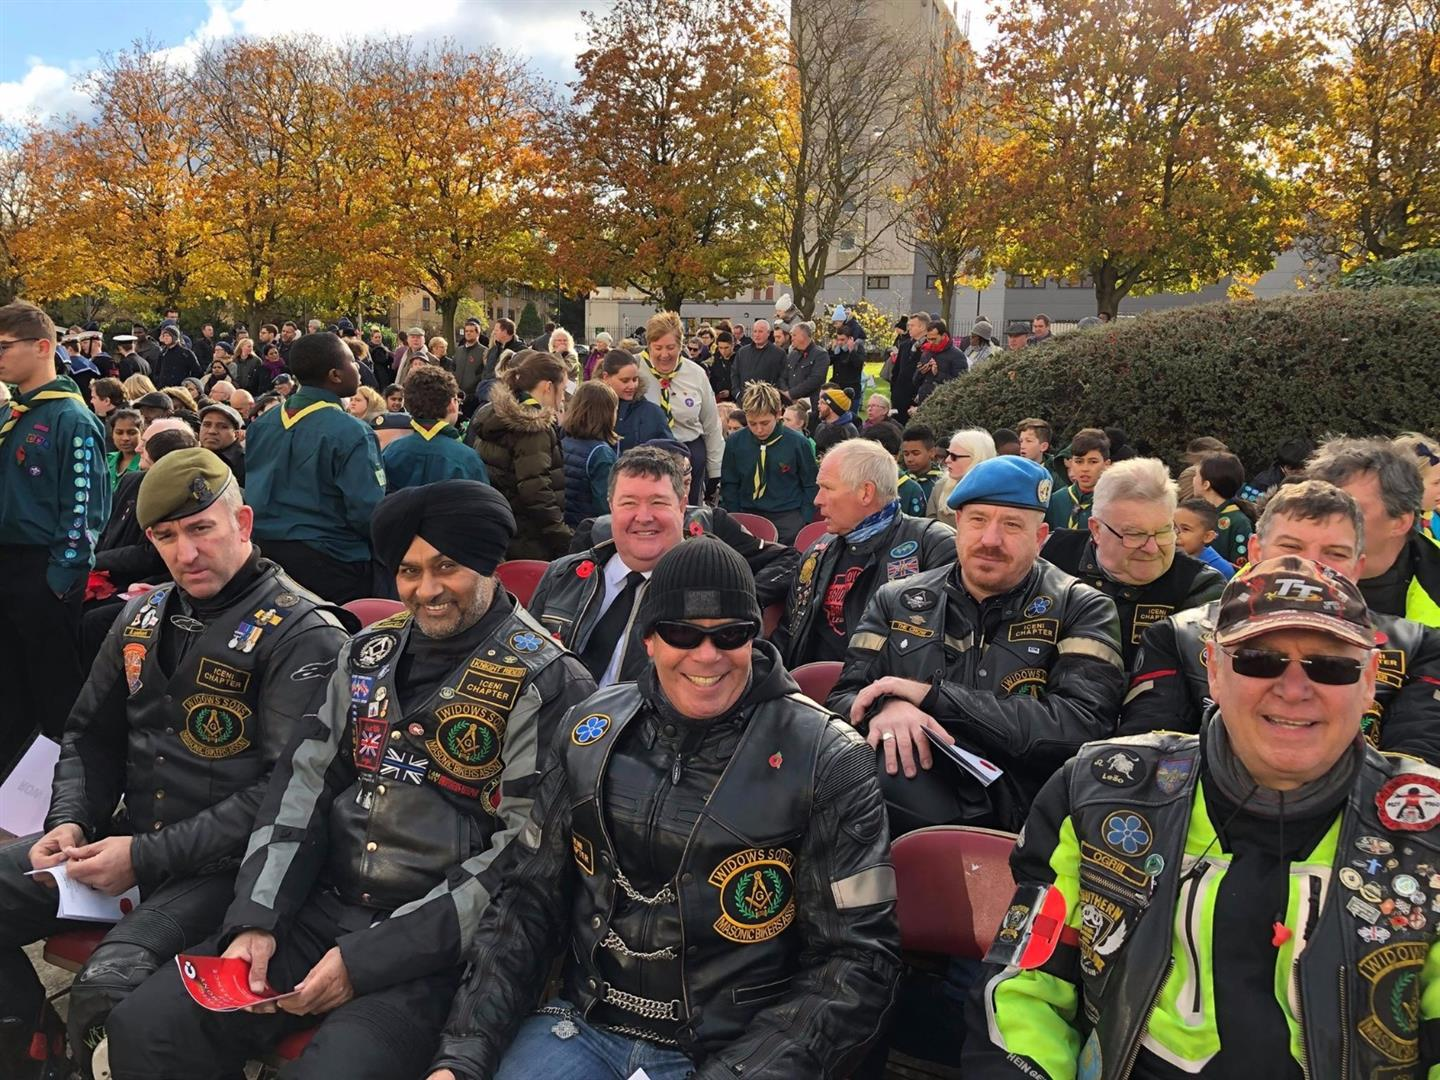 Widows Sons Masonic Bikers Association rememberance